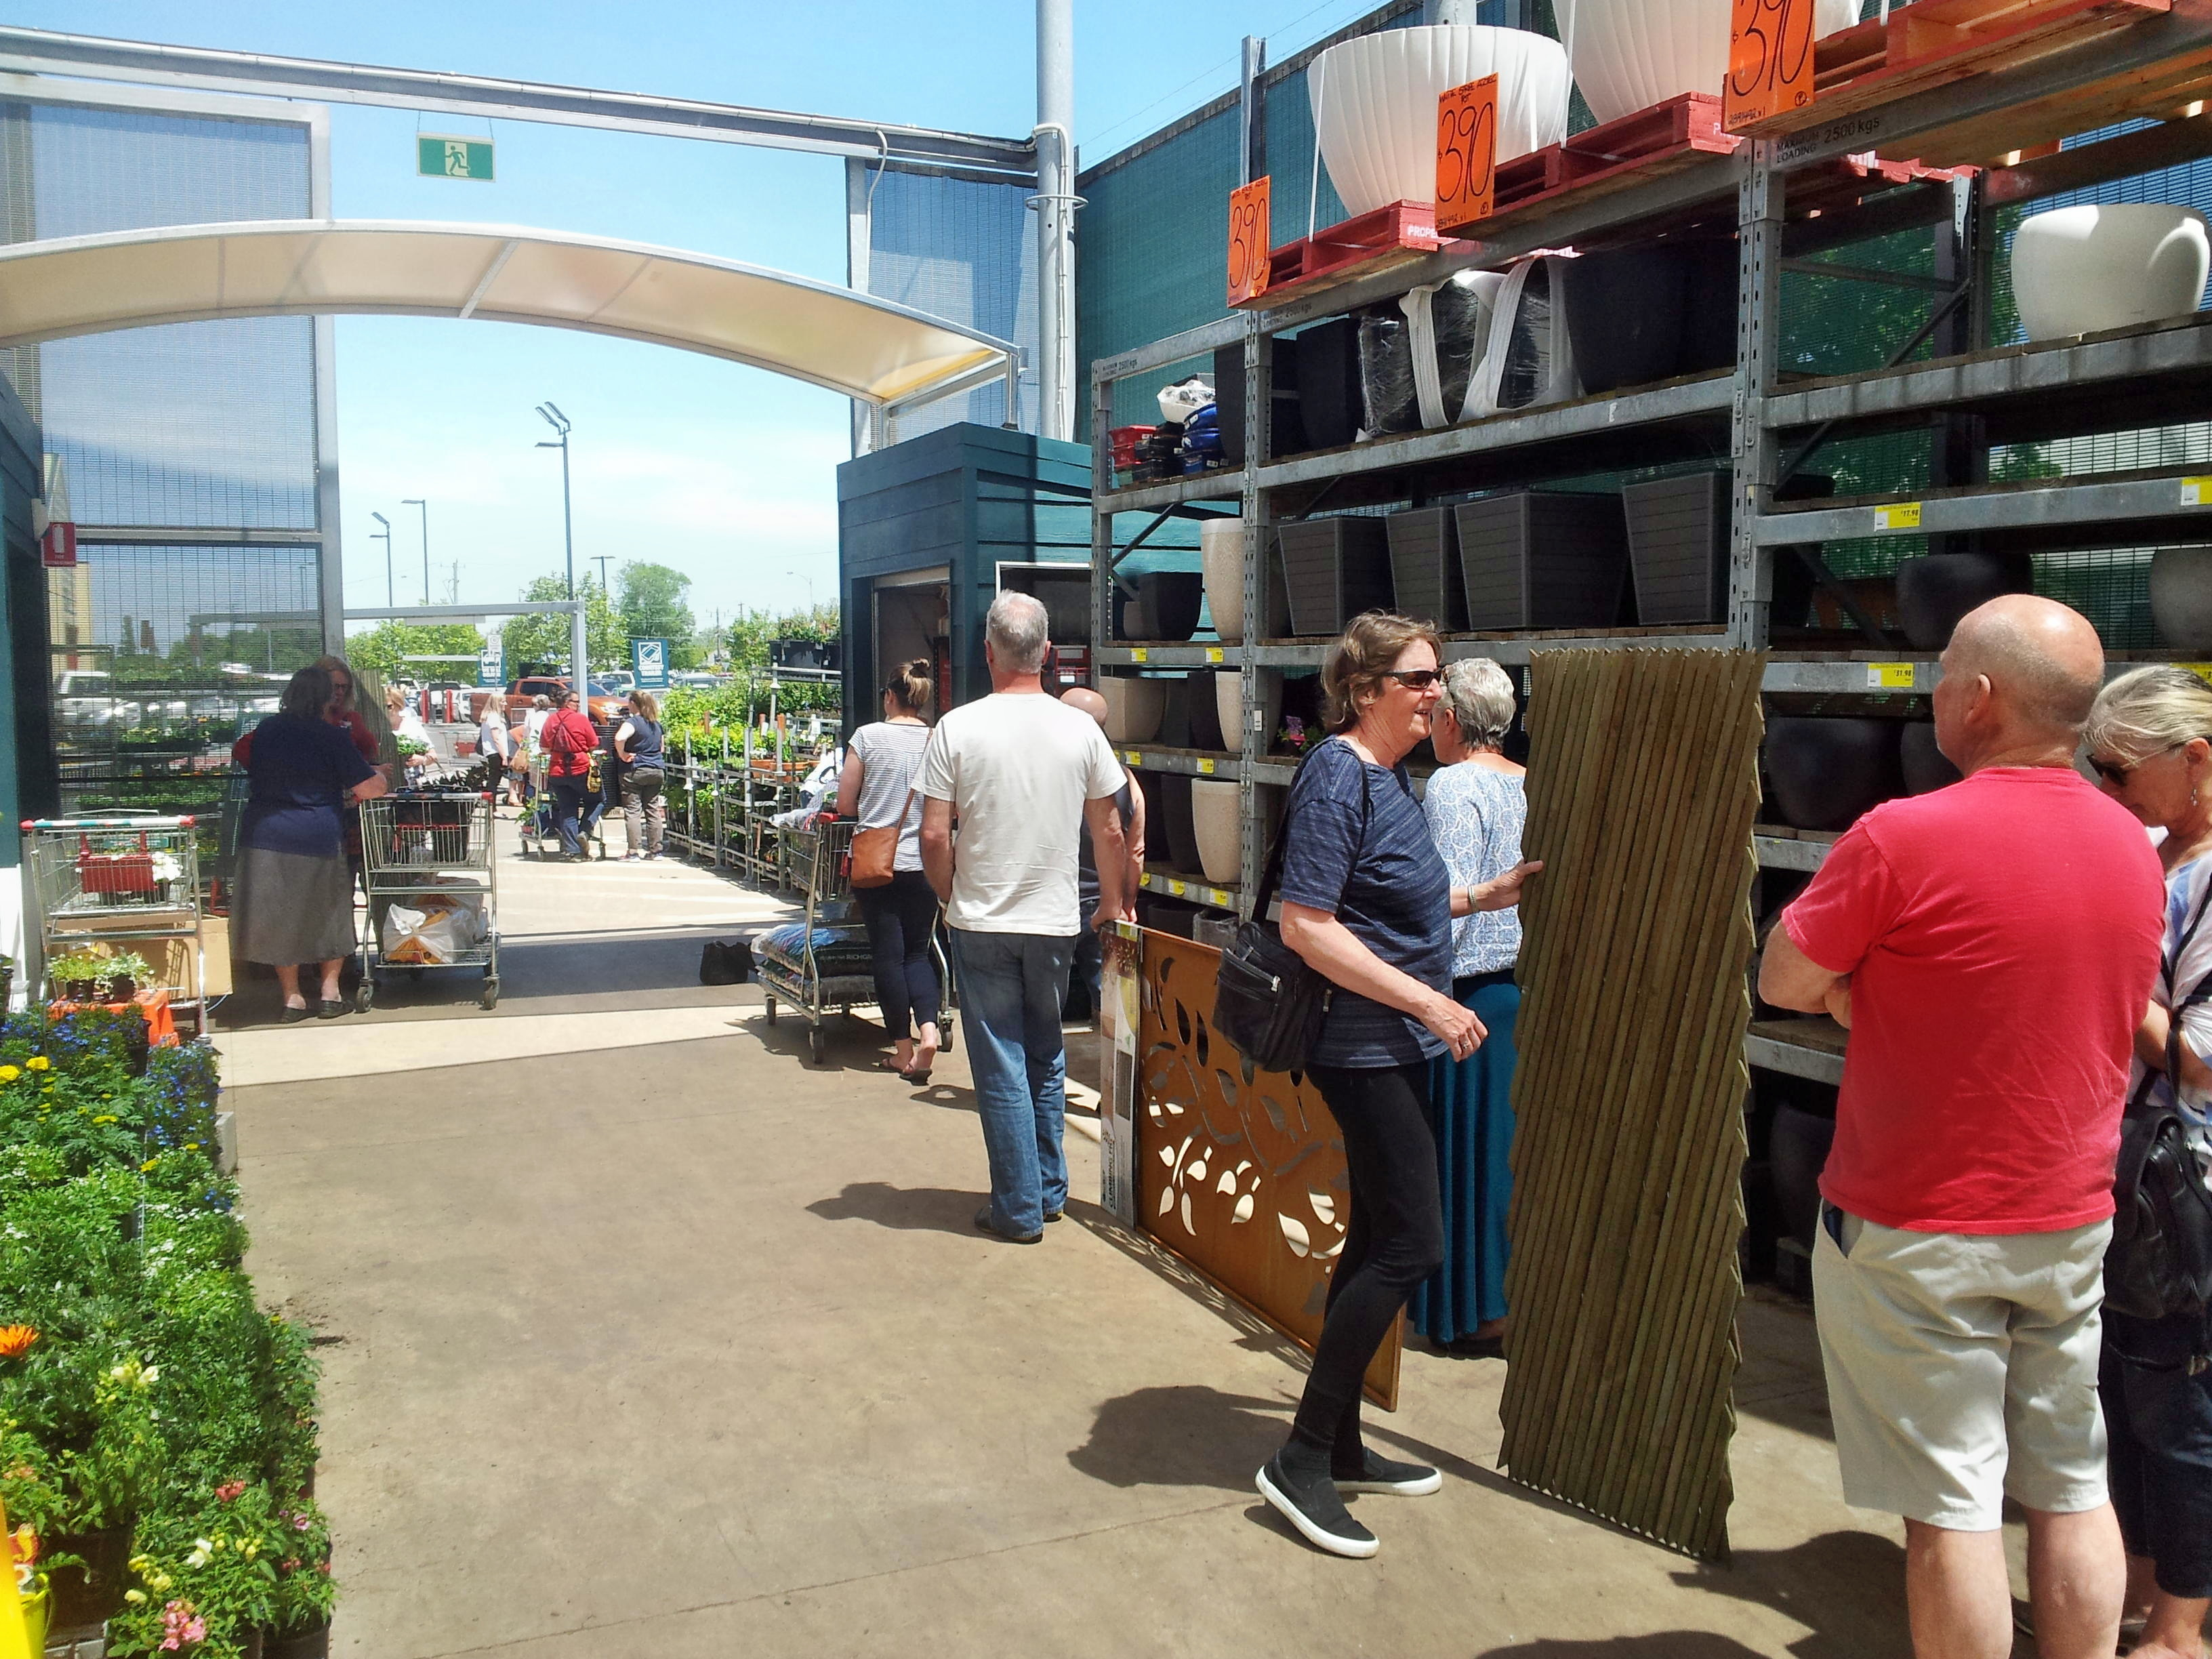 Bunnings-checkeout-2.jpeg